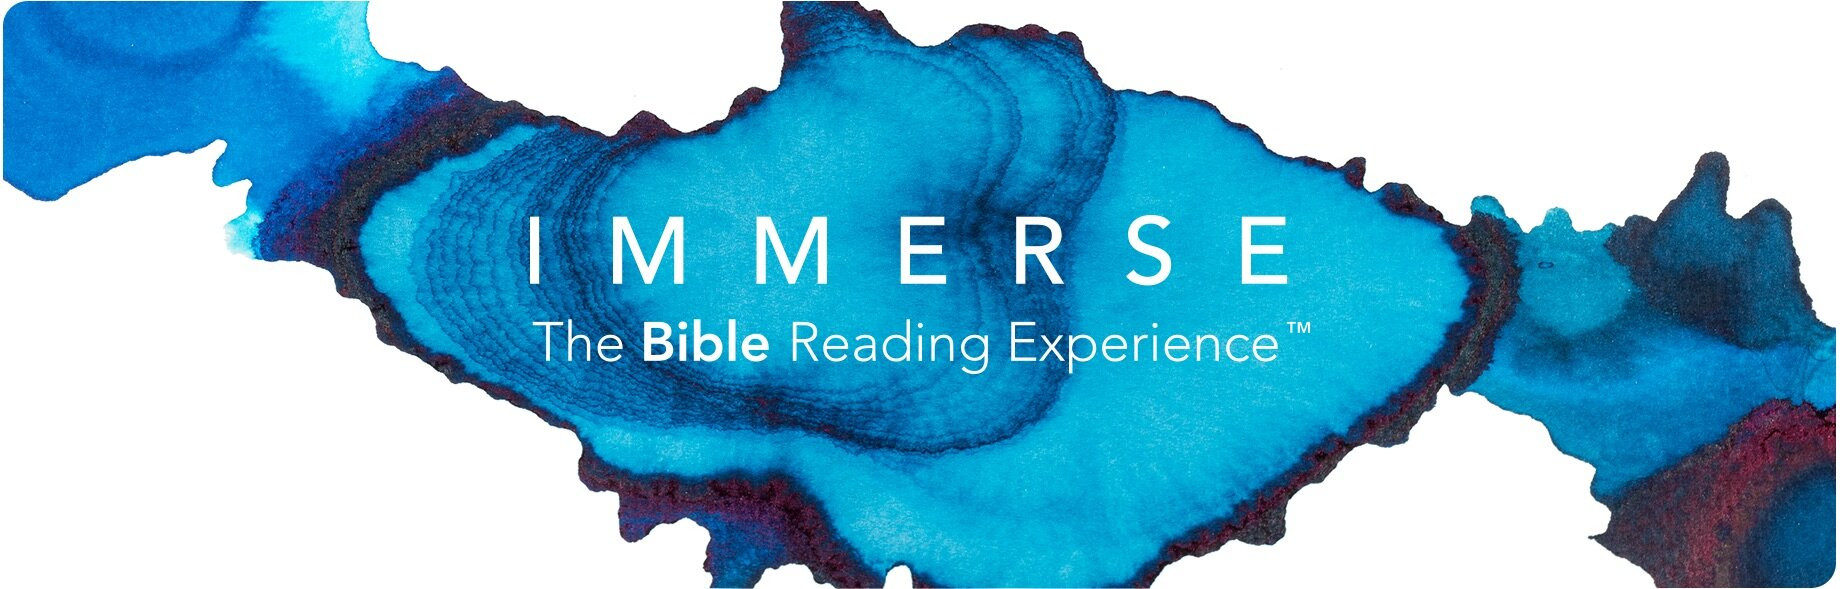 Immerese Bible reading